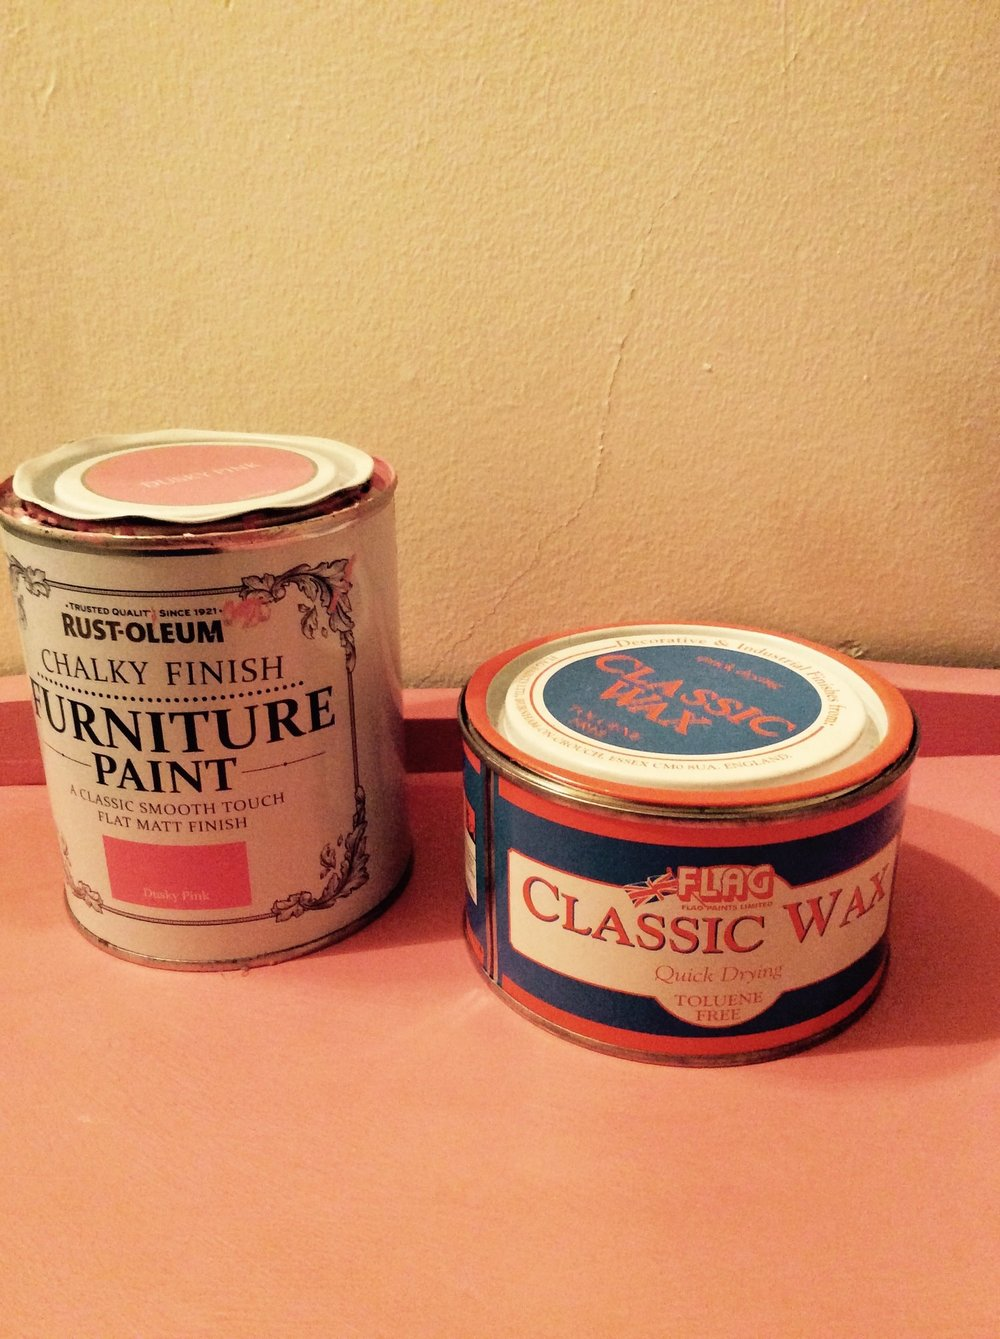 Dusky Pink Rustleum Chalk Paint and Flag Classic Wax.